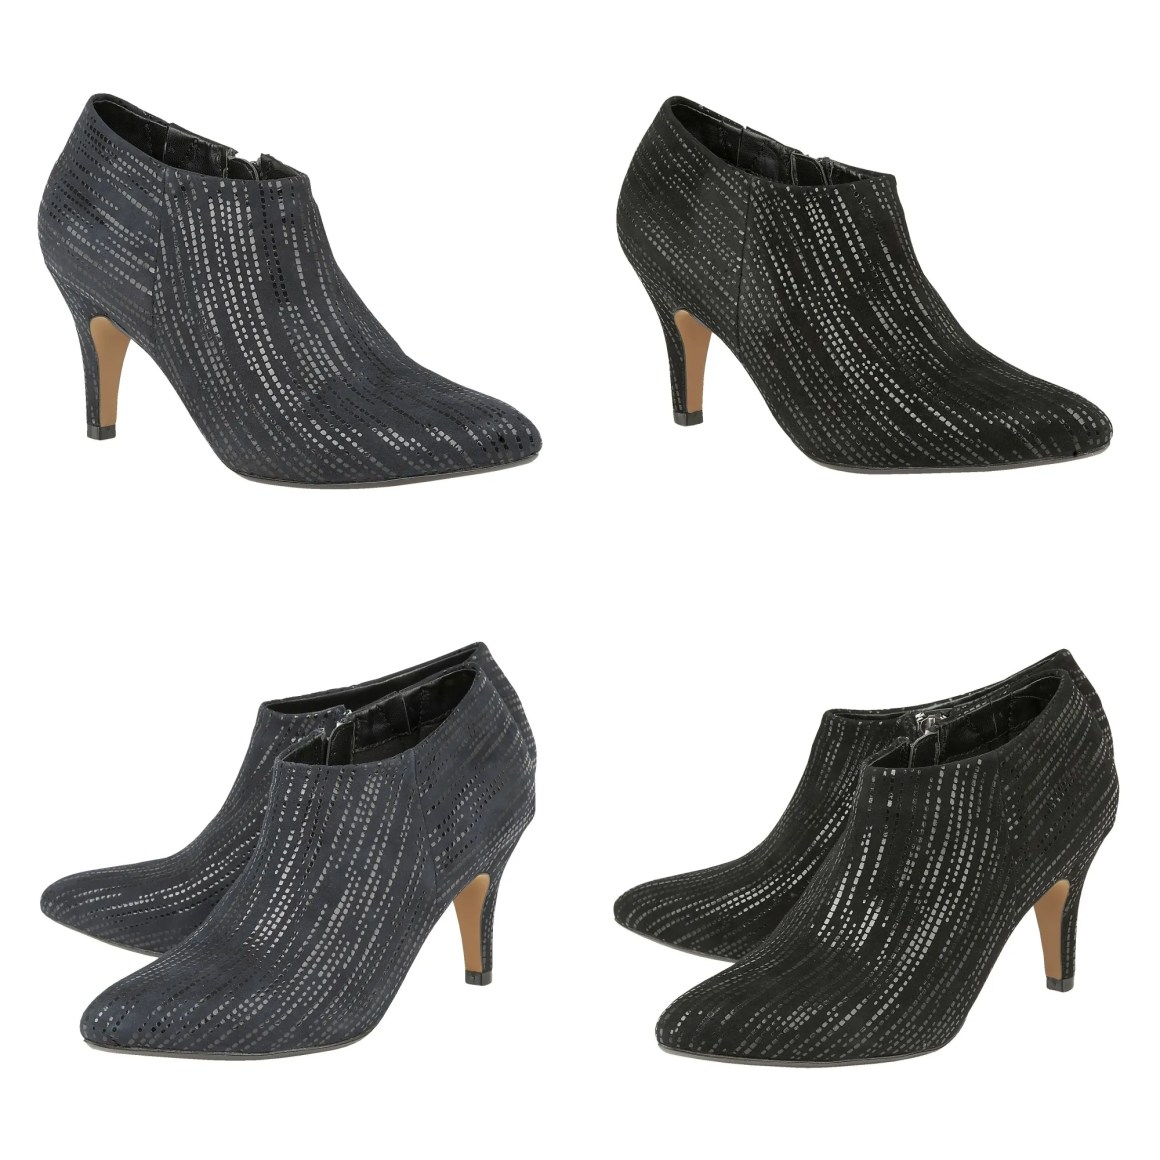 what-lizzy-loves-how-to-style-high-heeled-ankle-boots-navy-black-boudicca-lotus